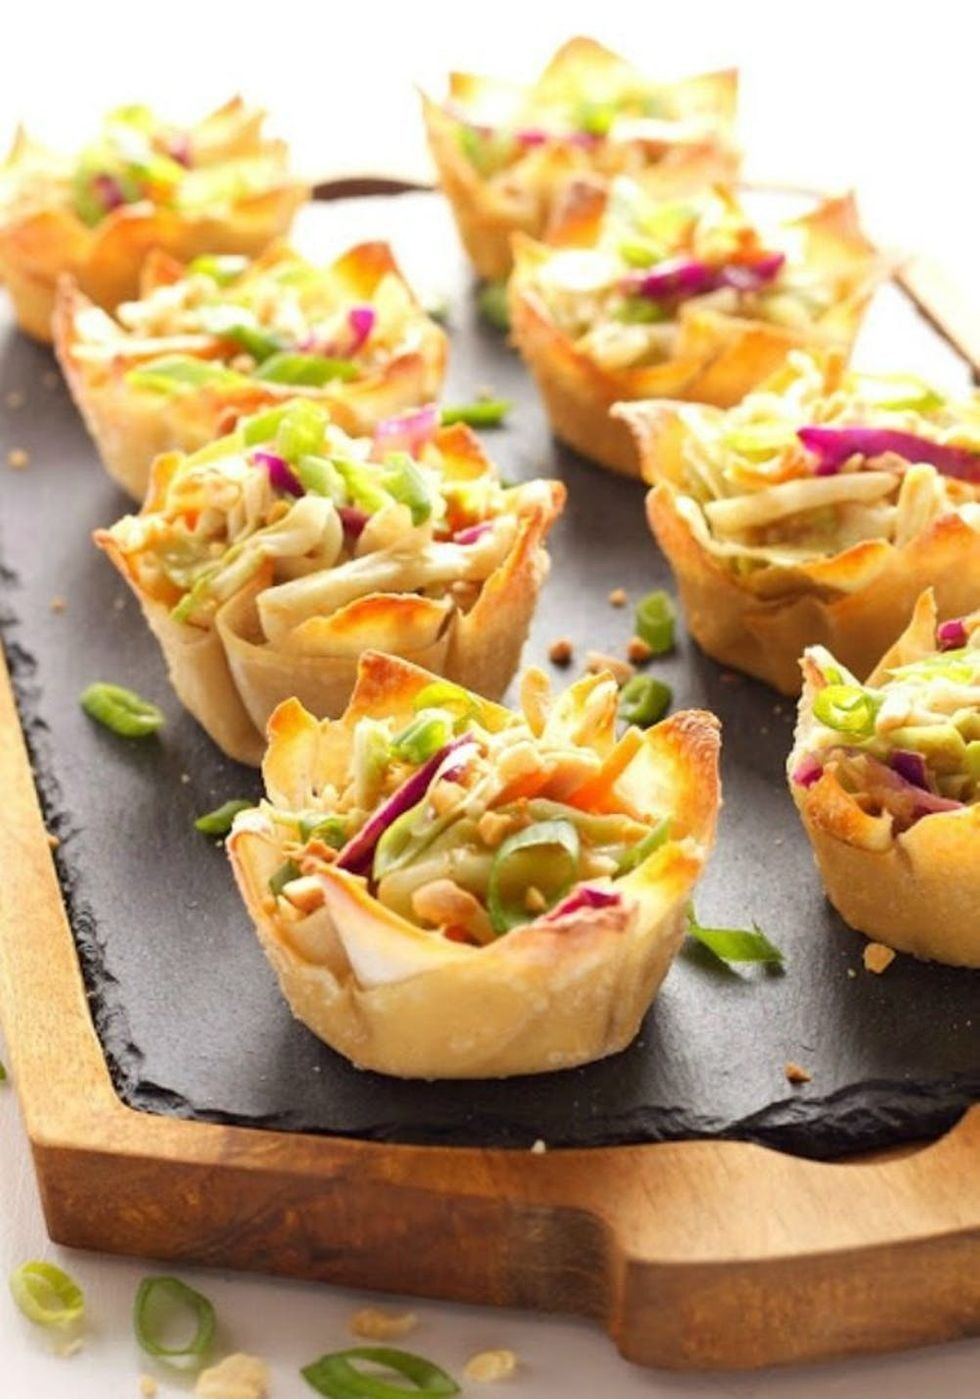 11 Super Simple Appetizers for a Happy New Year's Eve